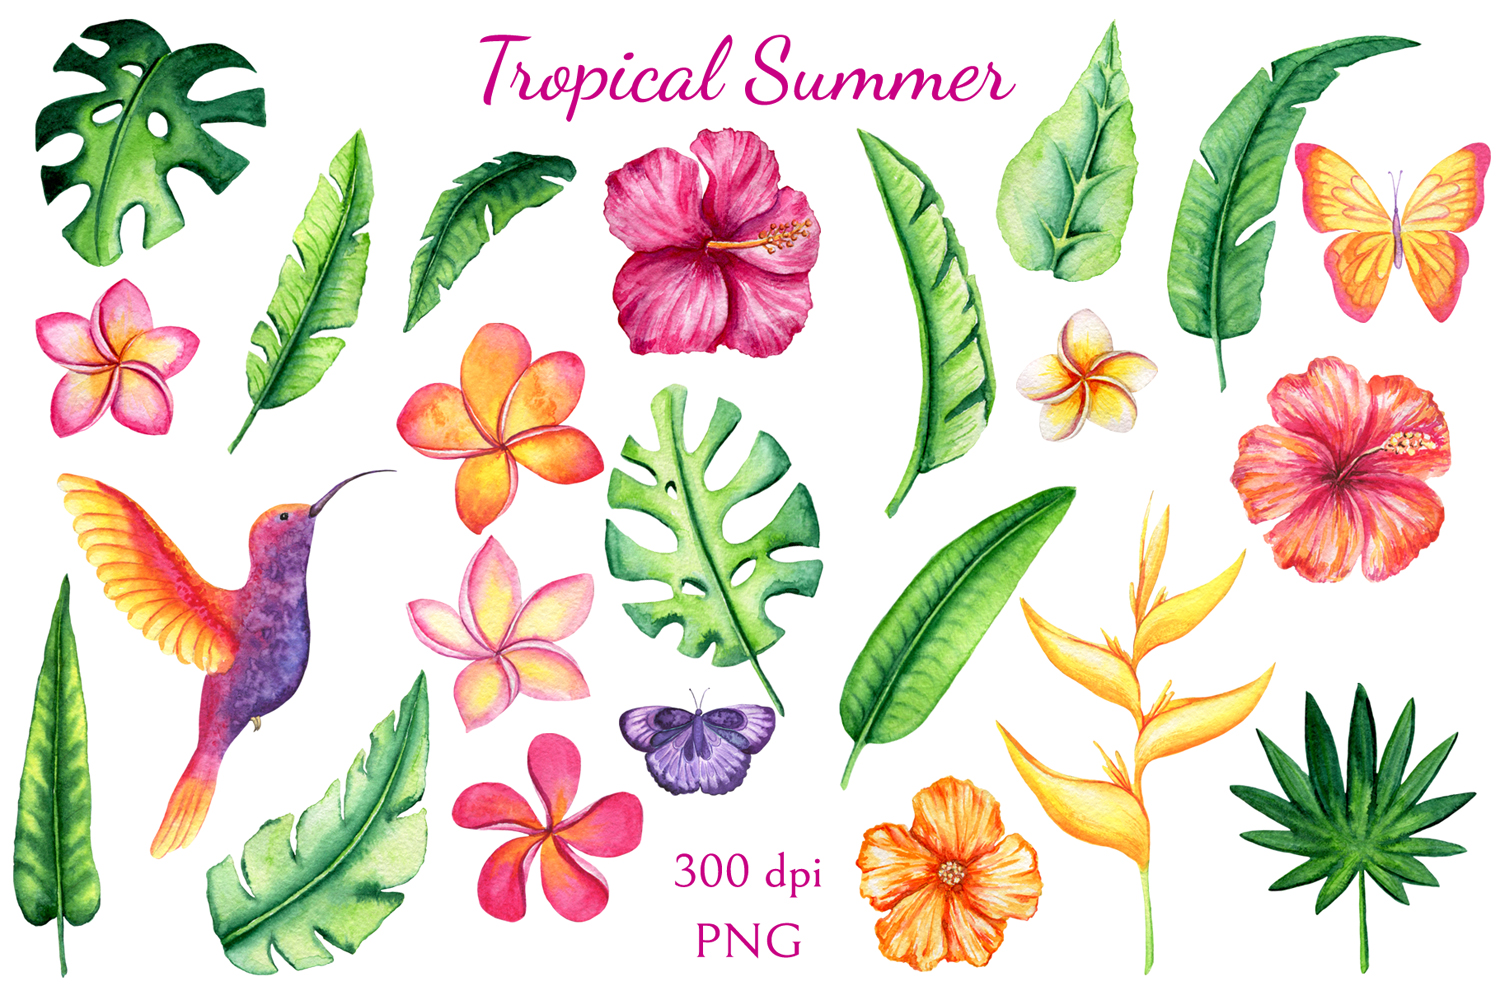 Tropical Summer example image 3